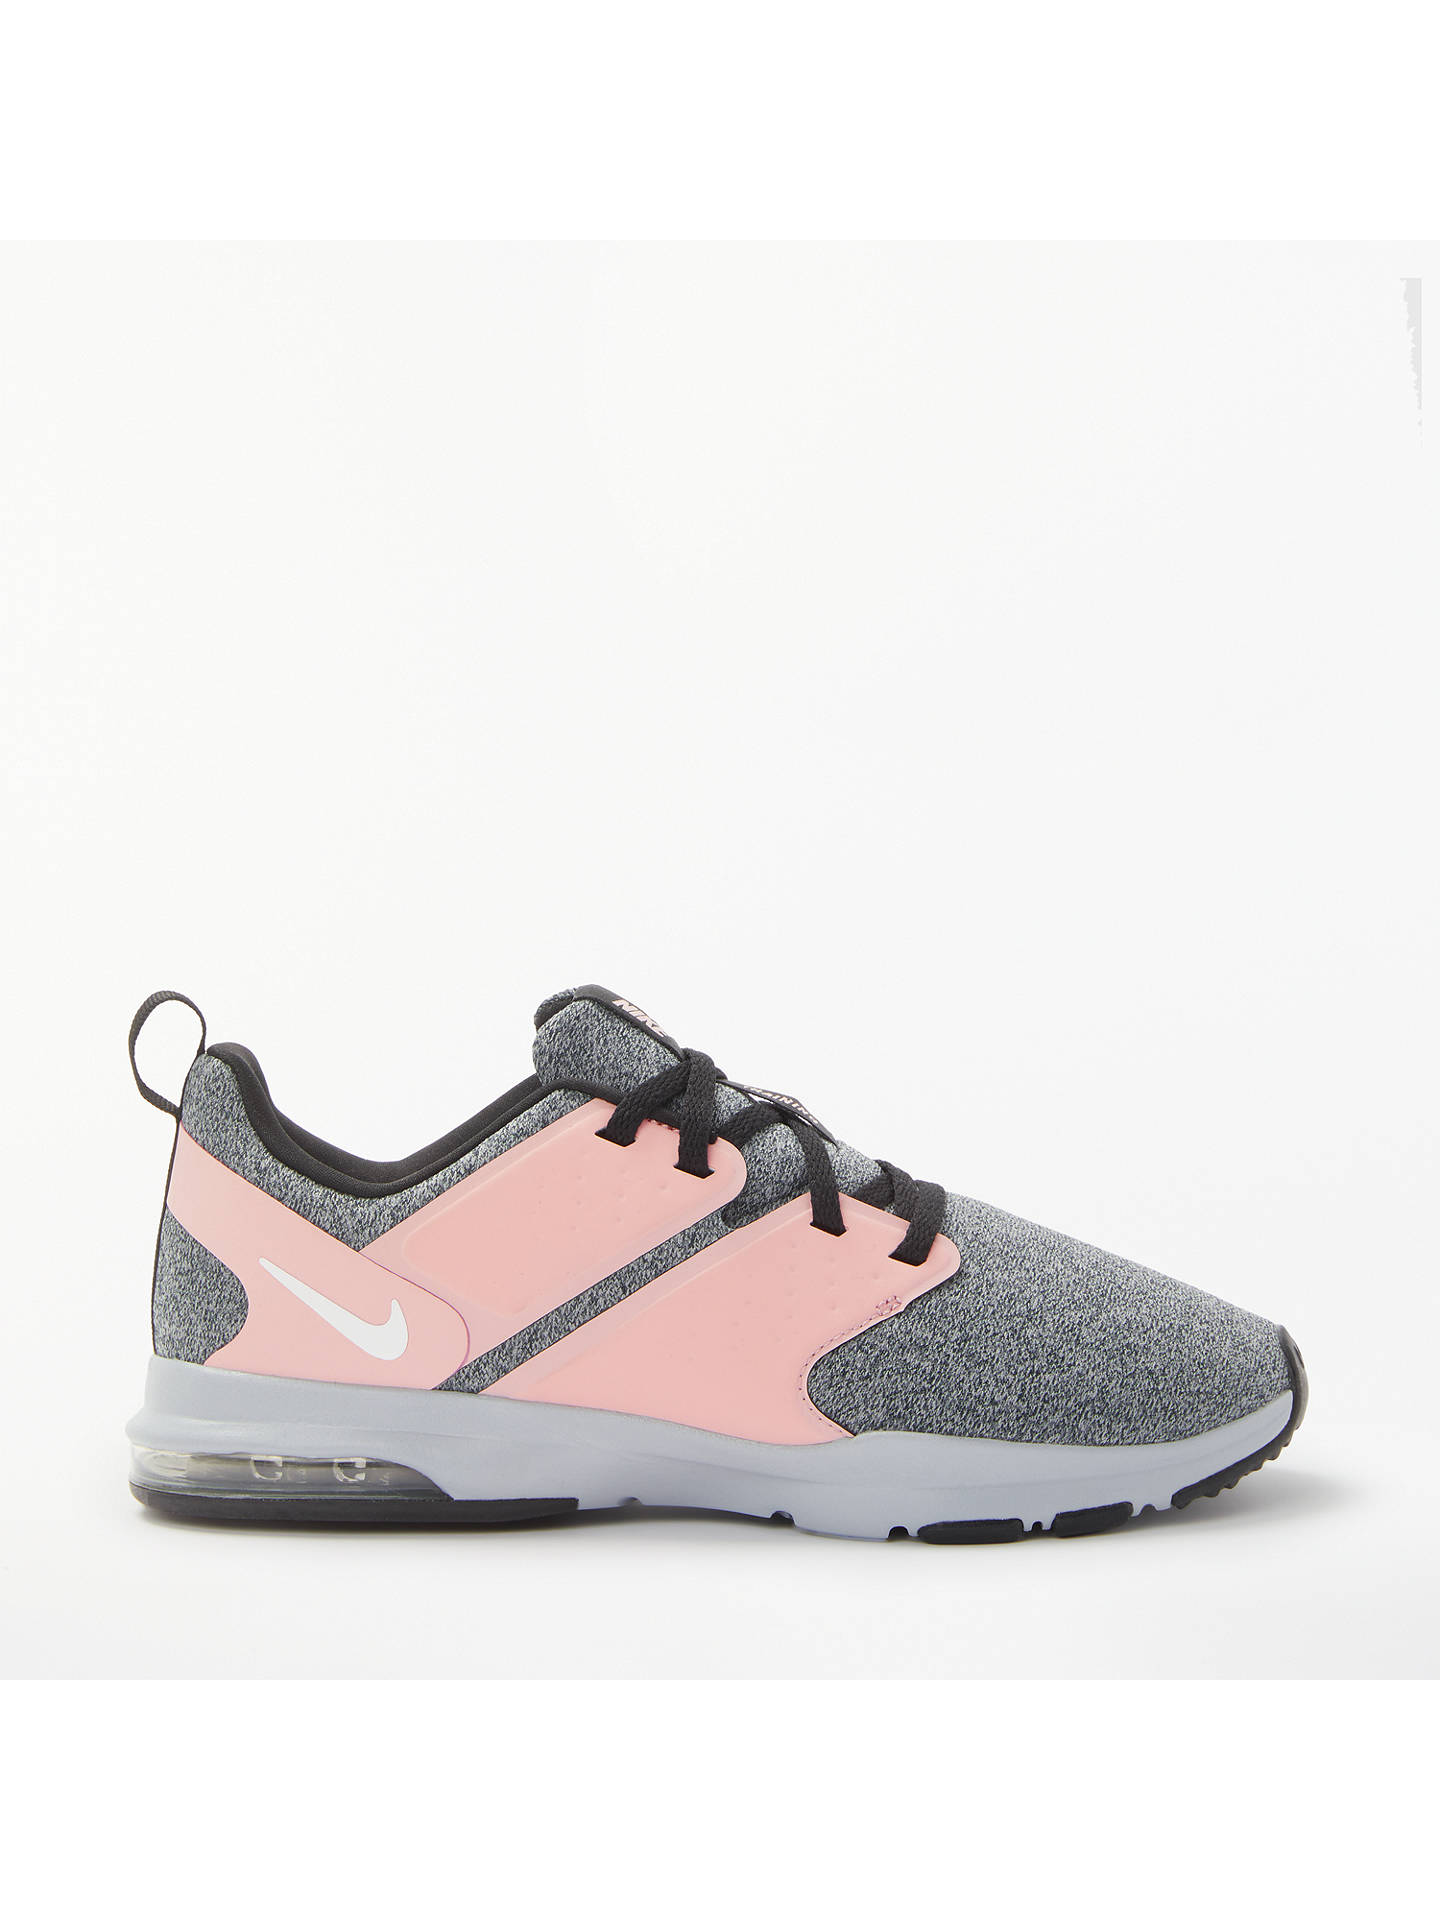 3586df5c5047 Buy Nike Air Bella TR Women s Training Shoes